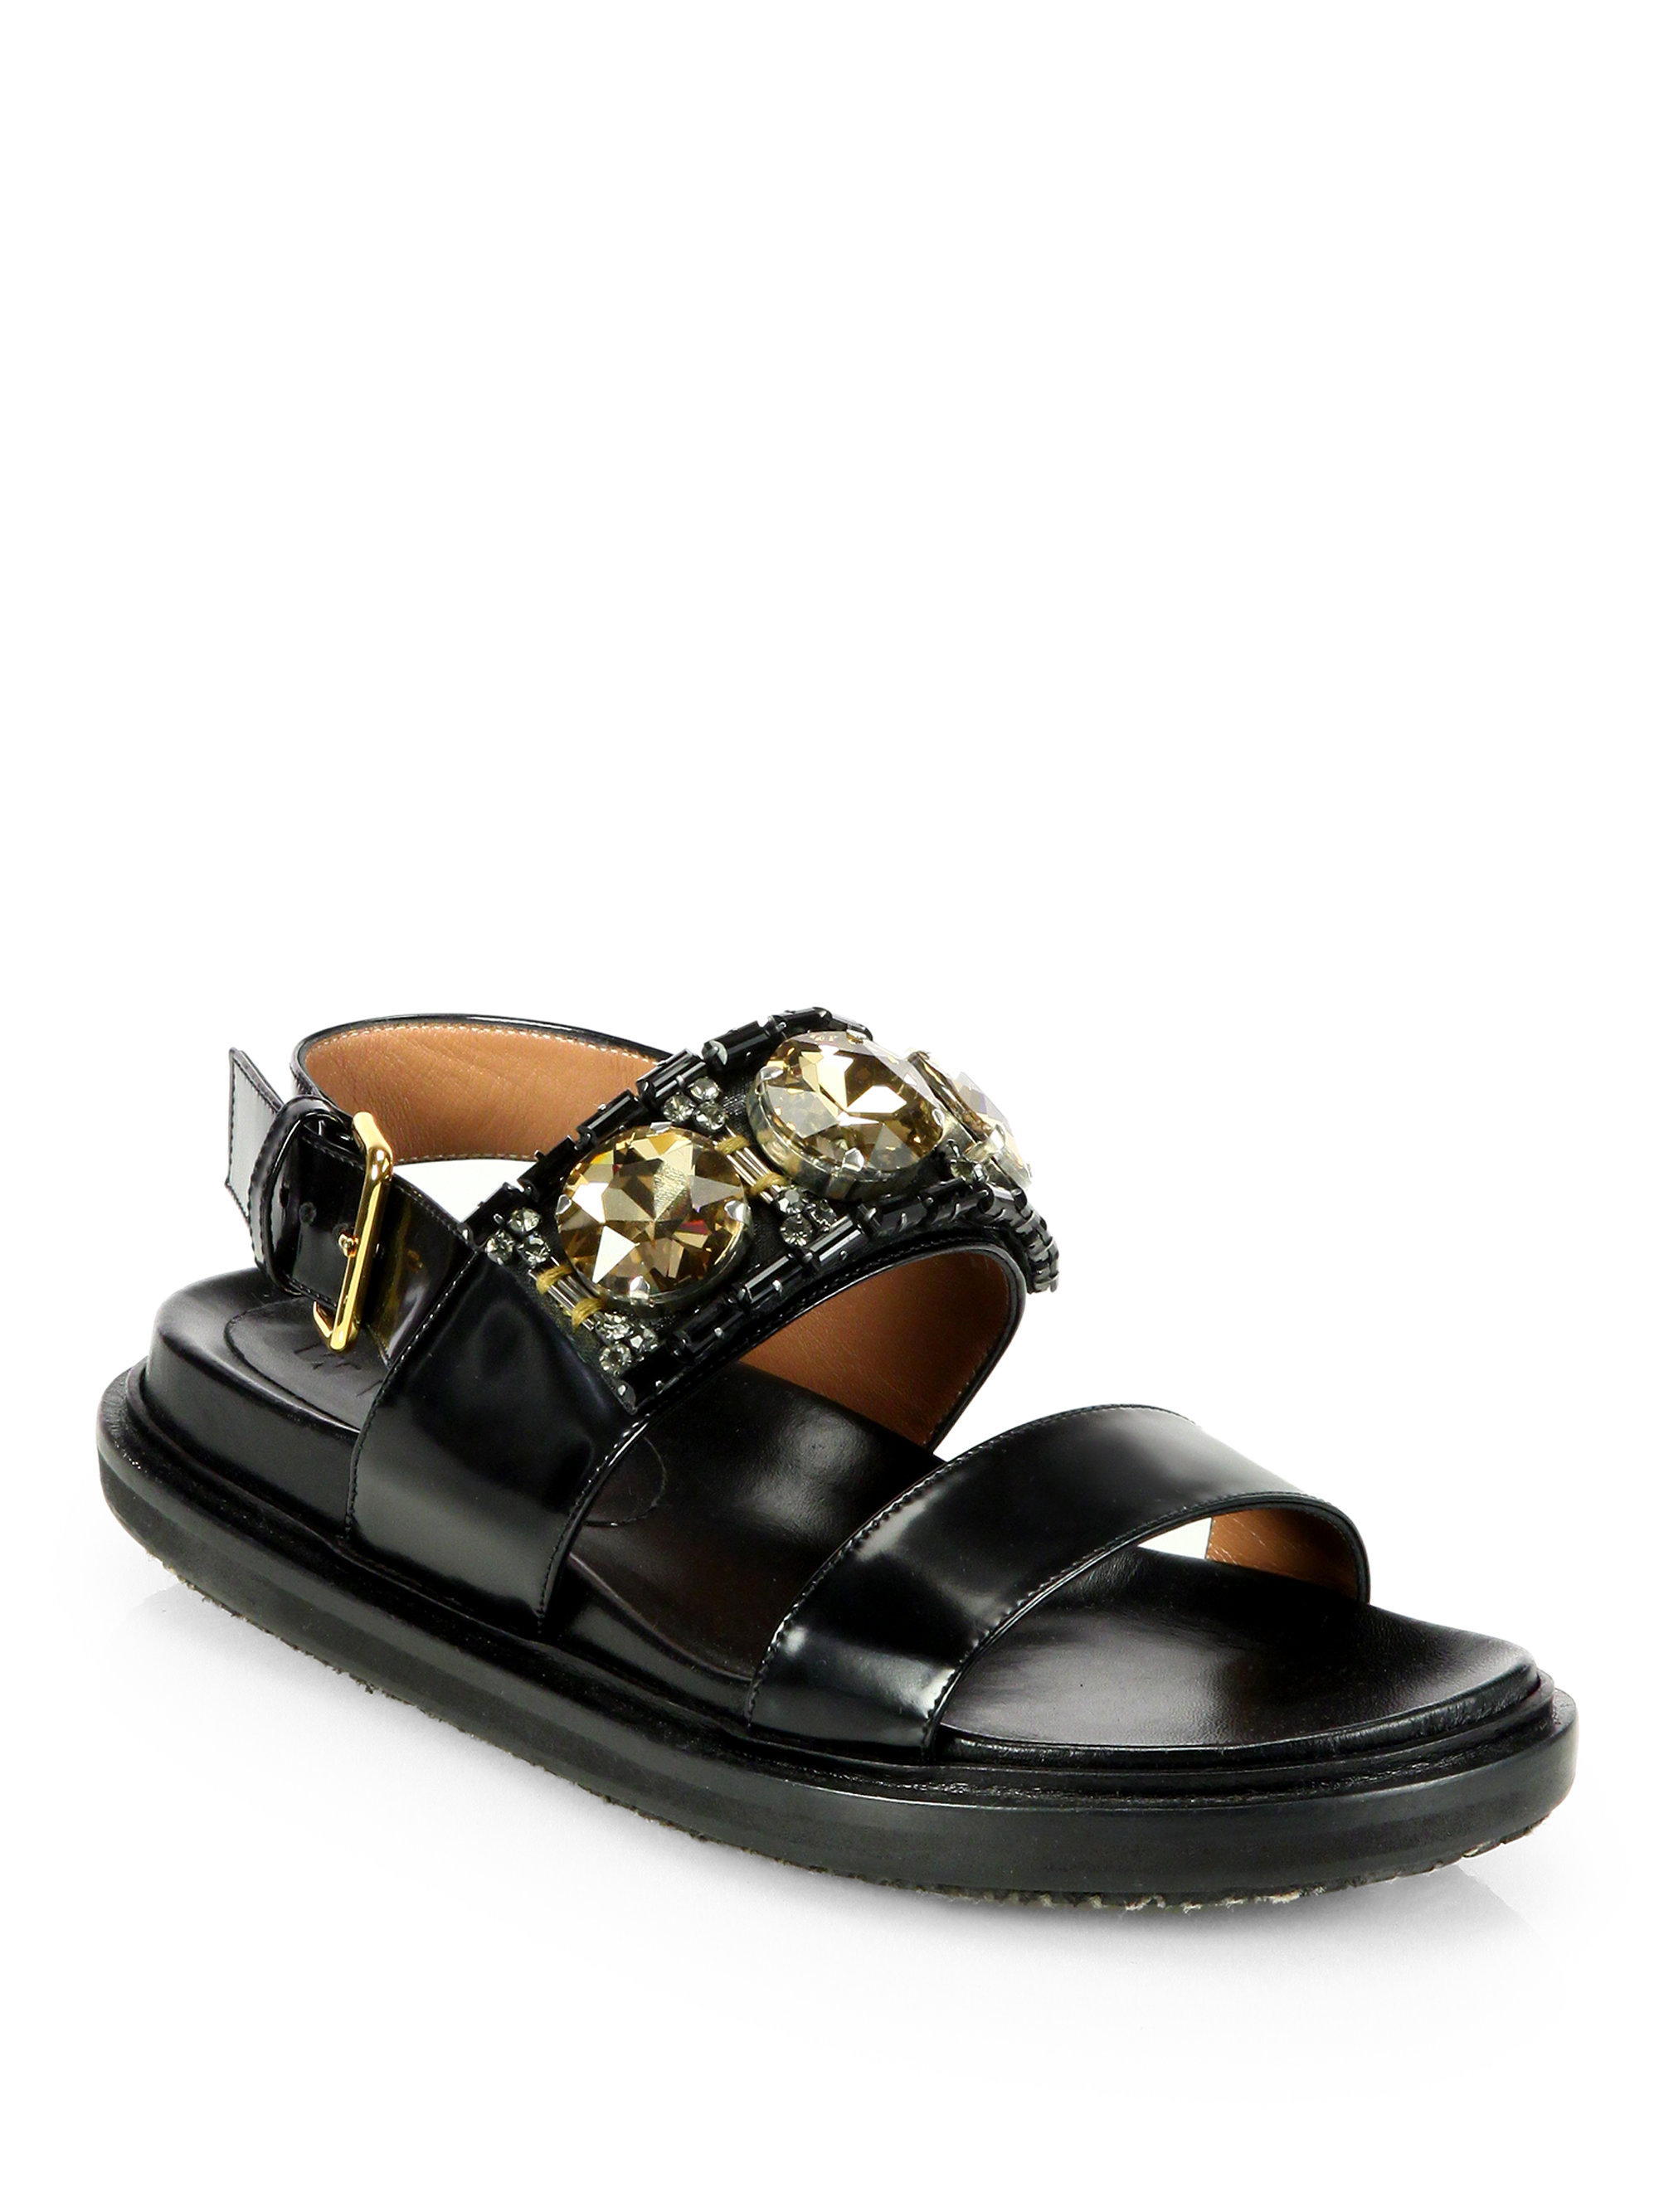 Marni Jeweled Leather Slingback Platform Flat Sandals In